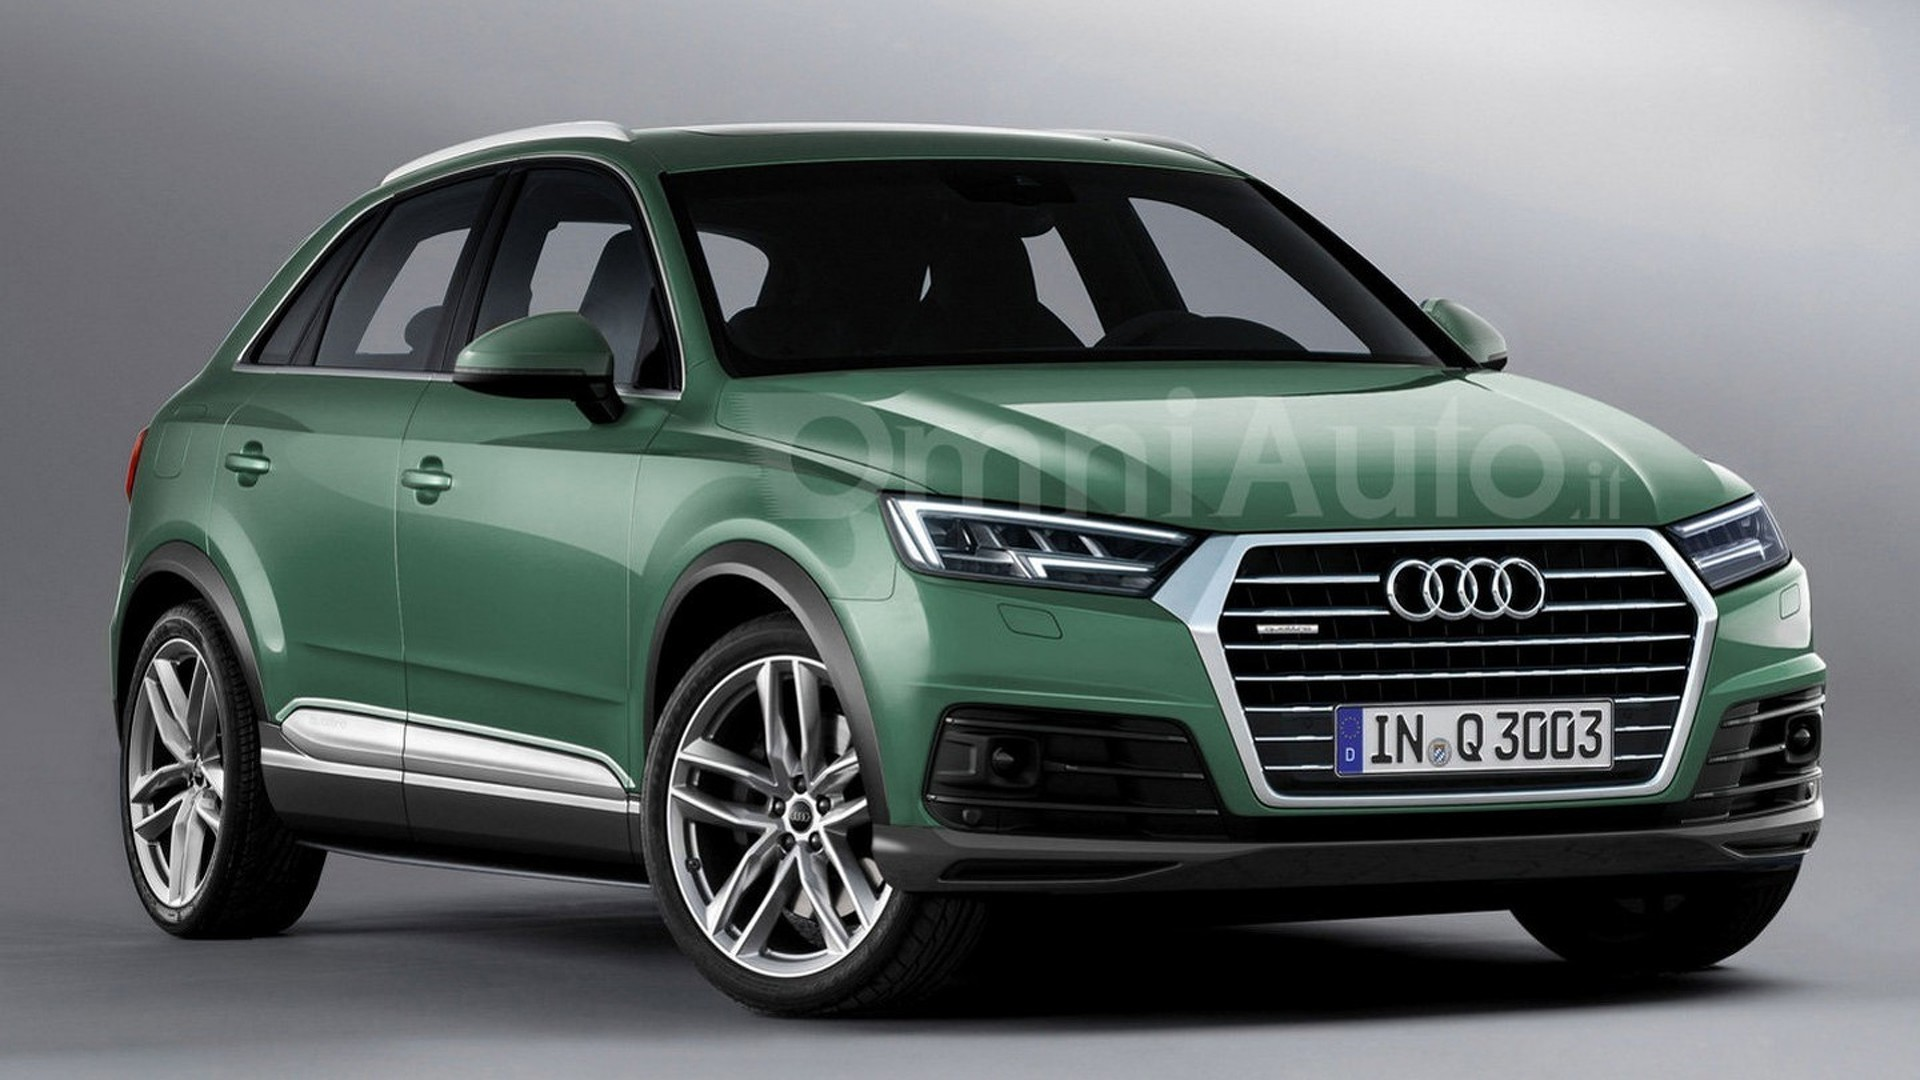 2018 audi q3 render points towards predictable design for Quando esce la nuova audi q3 2018